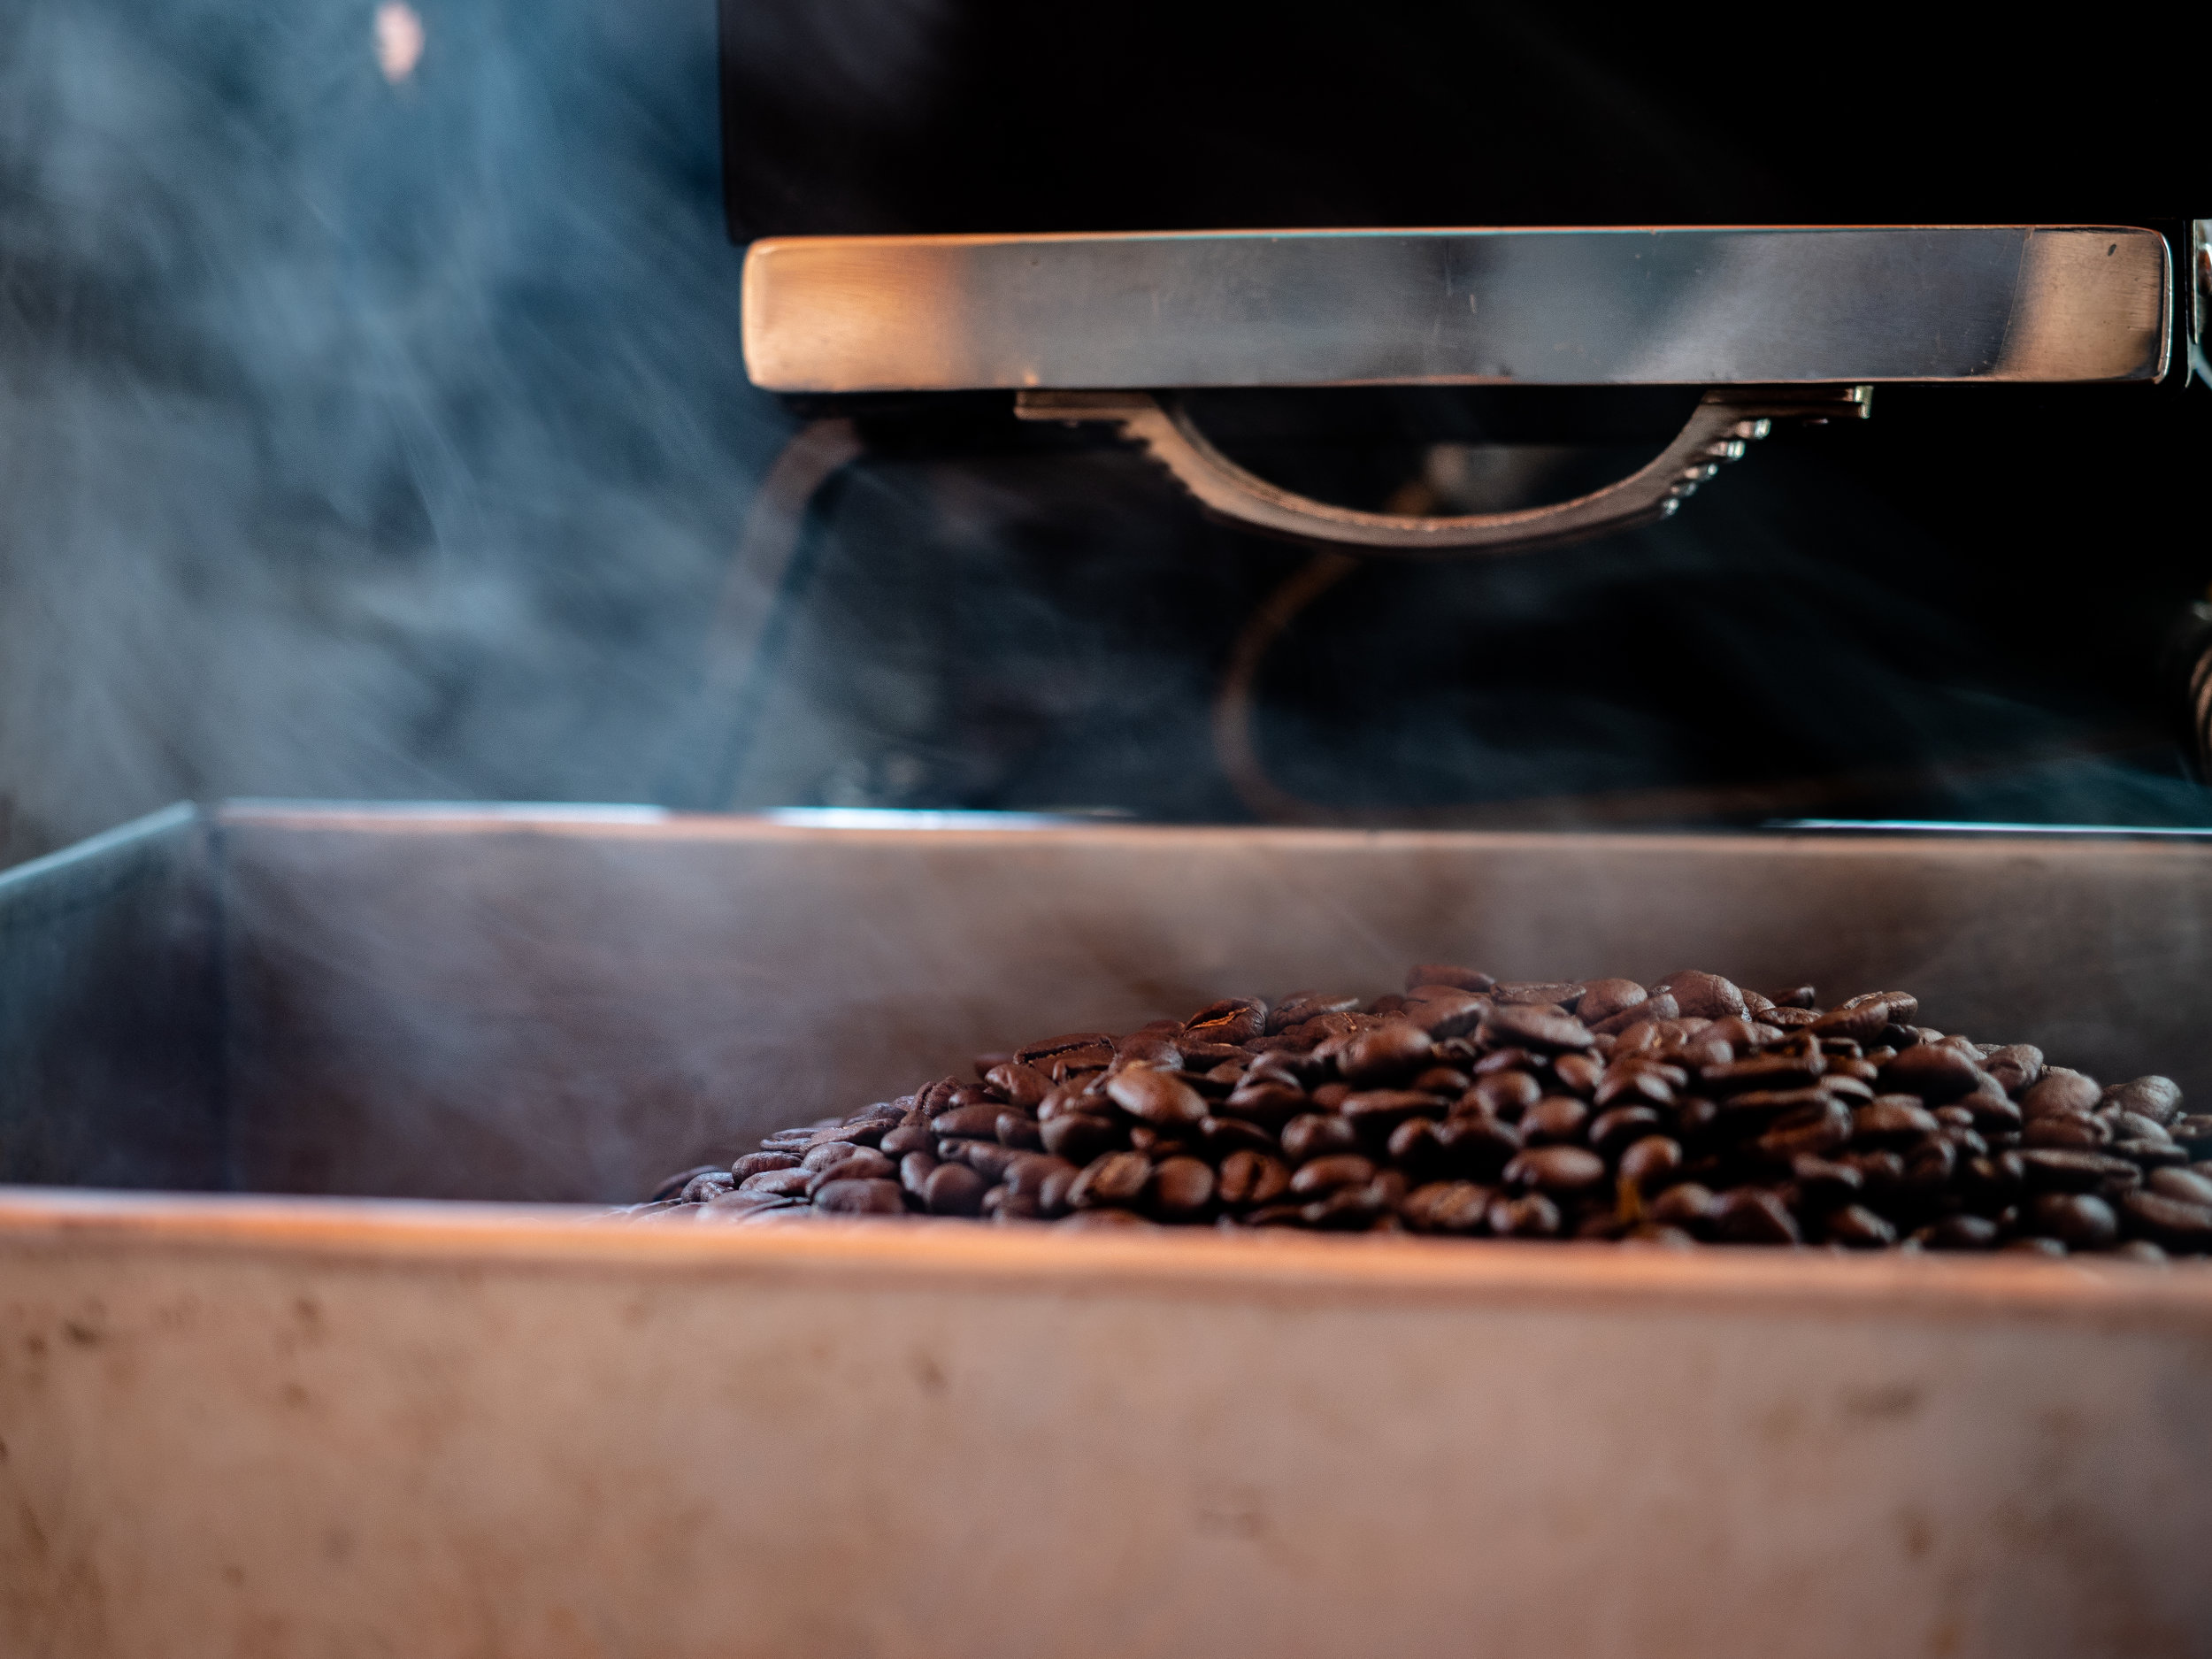 Musings by the Glass - Caffeinated Caravan - Roasted to Perfection